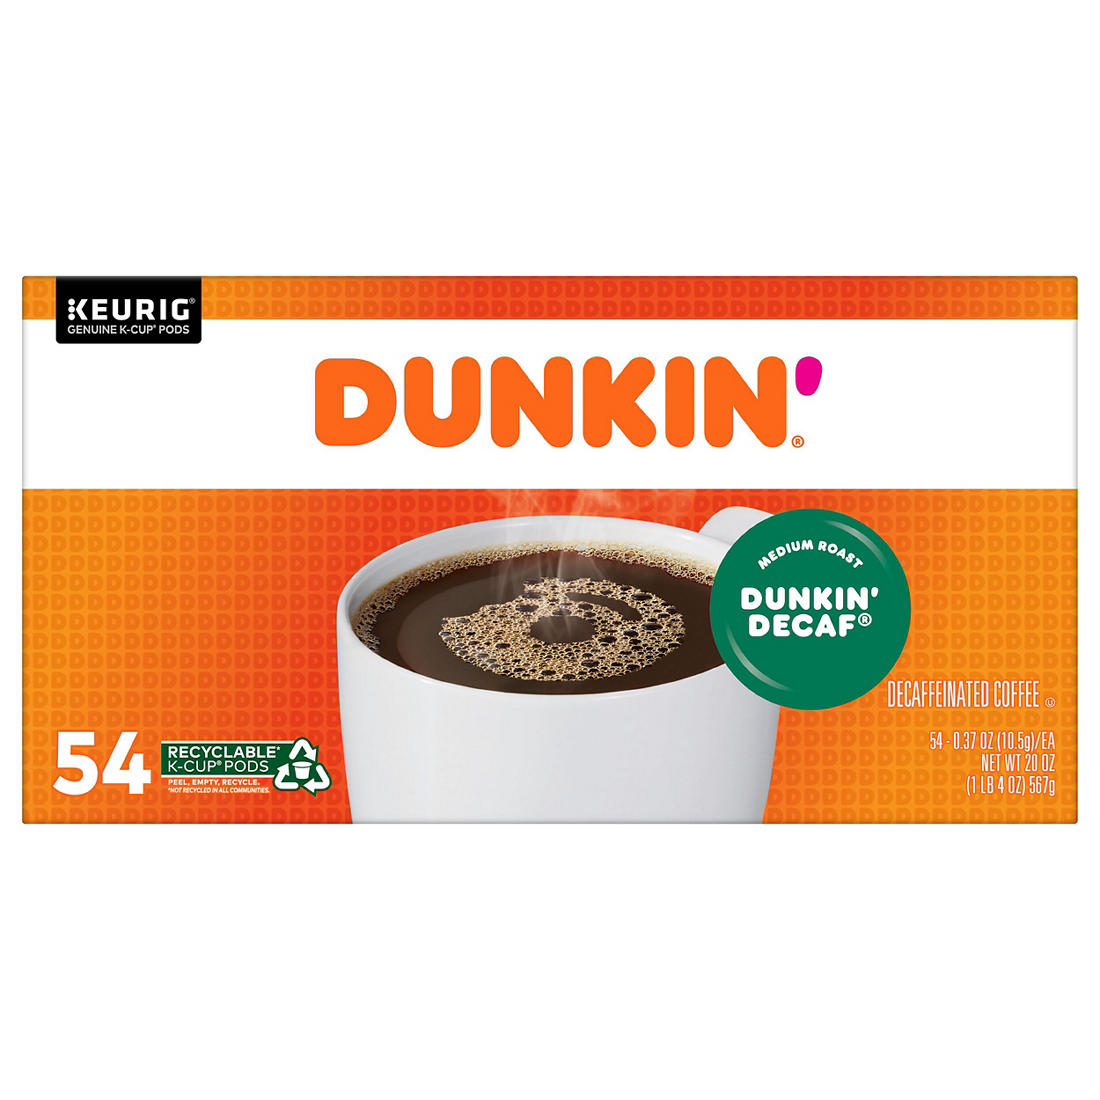 image about Dunkin Donuts Coffee Printable Coupons named Dunkin Donuts Authentic Combination Decaf K-Cup Pods, 54 ct.